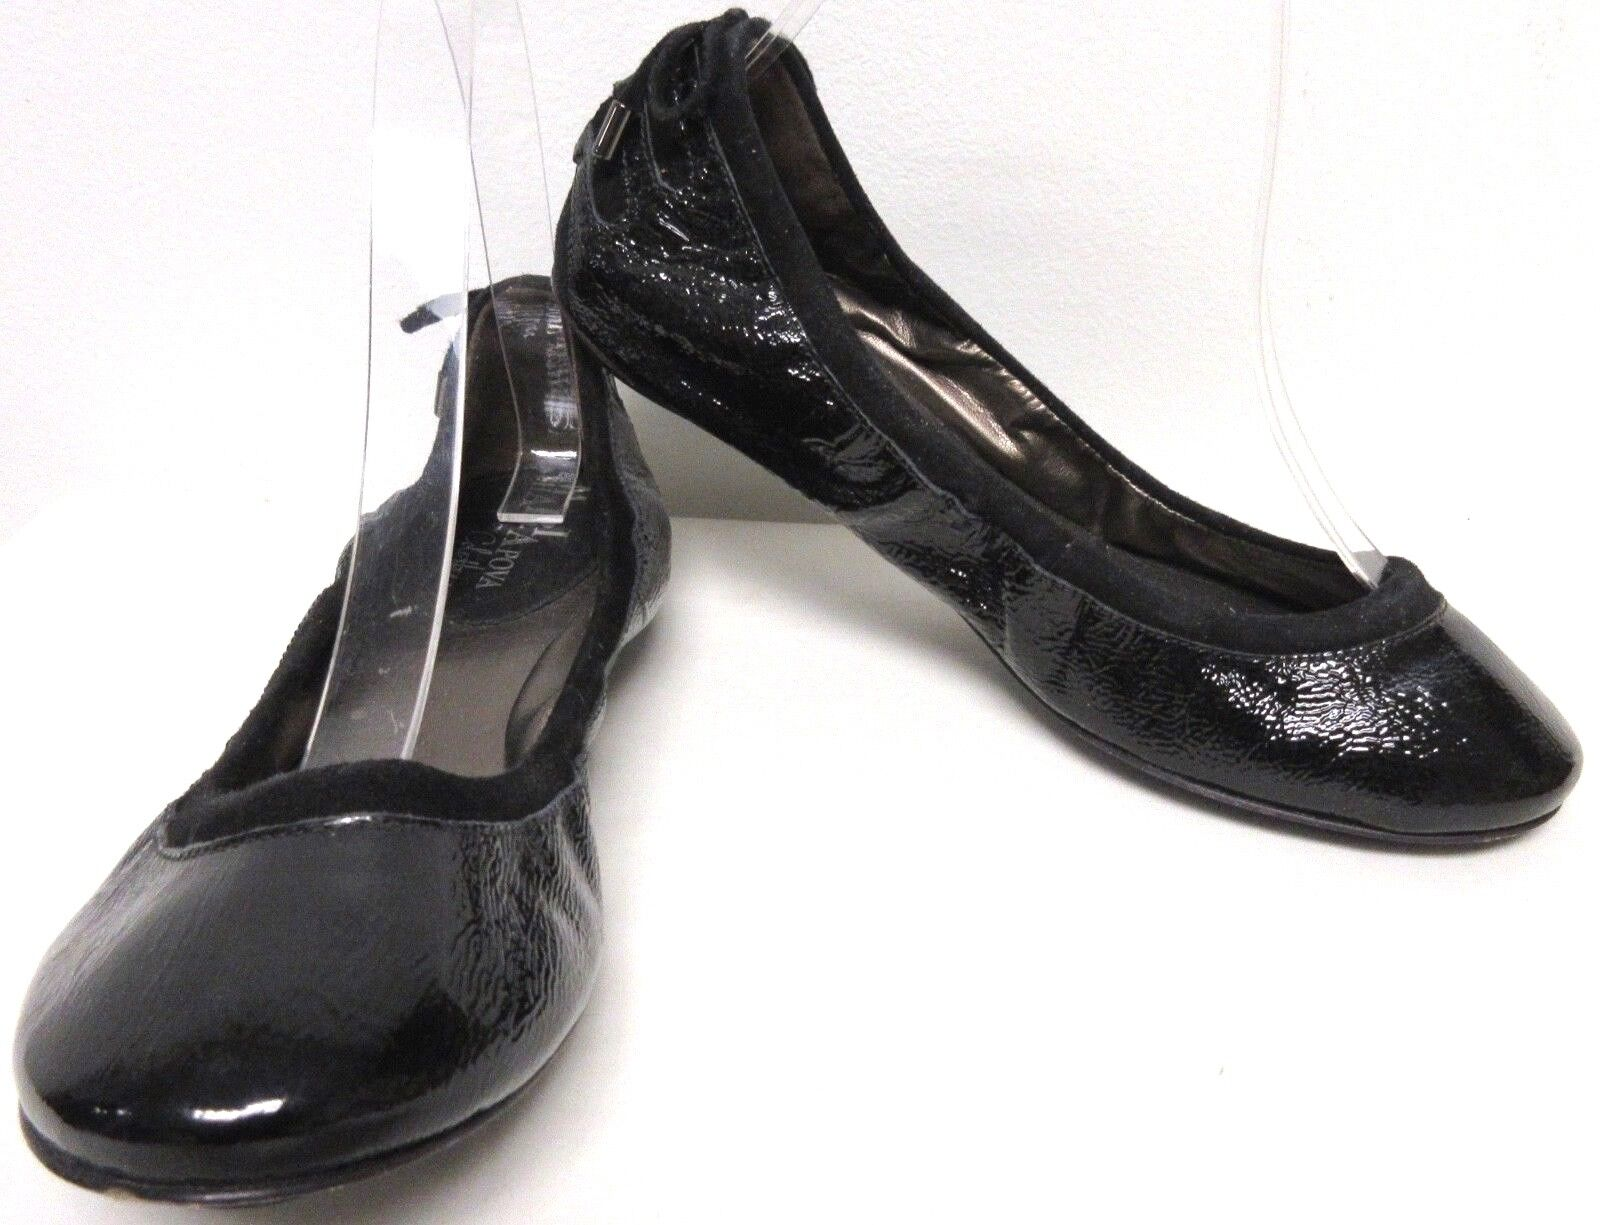 MARIA SHARAPOVA BY COLE HAAN BLACK PATENT LEATHER CORSET HEEL BALLET FLATS SZ 6B